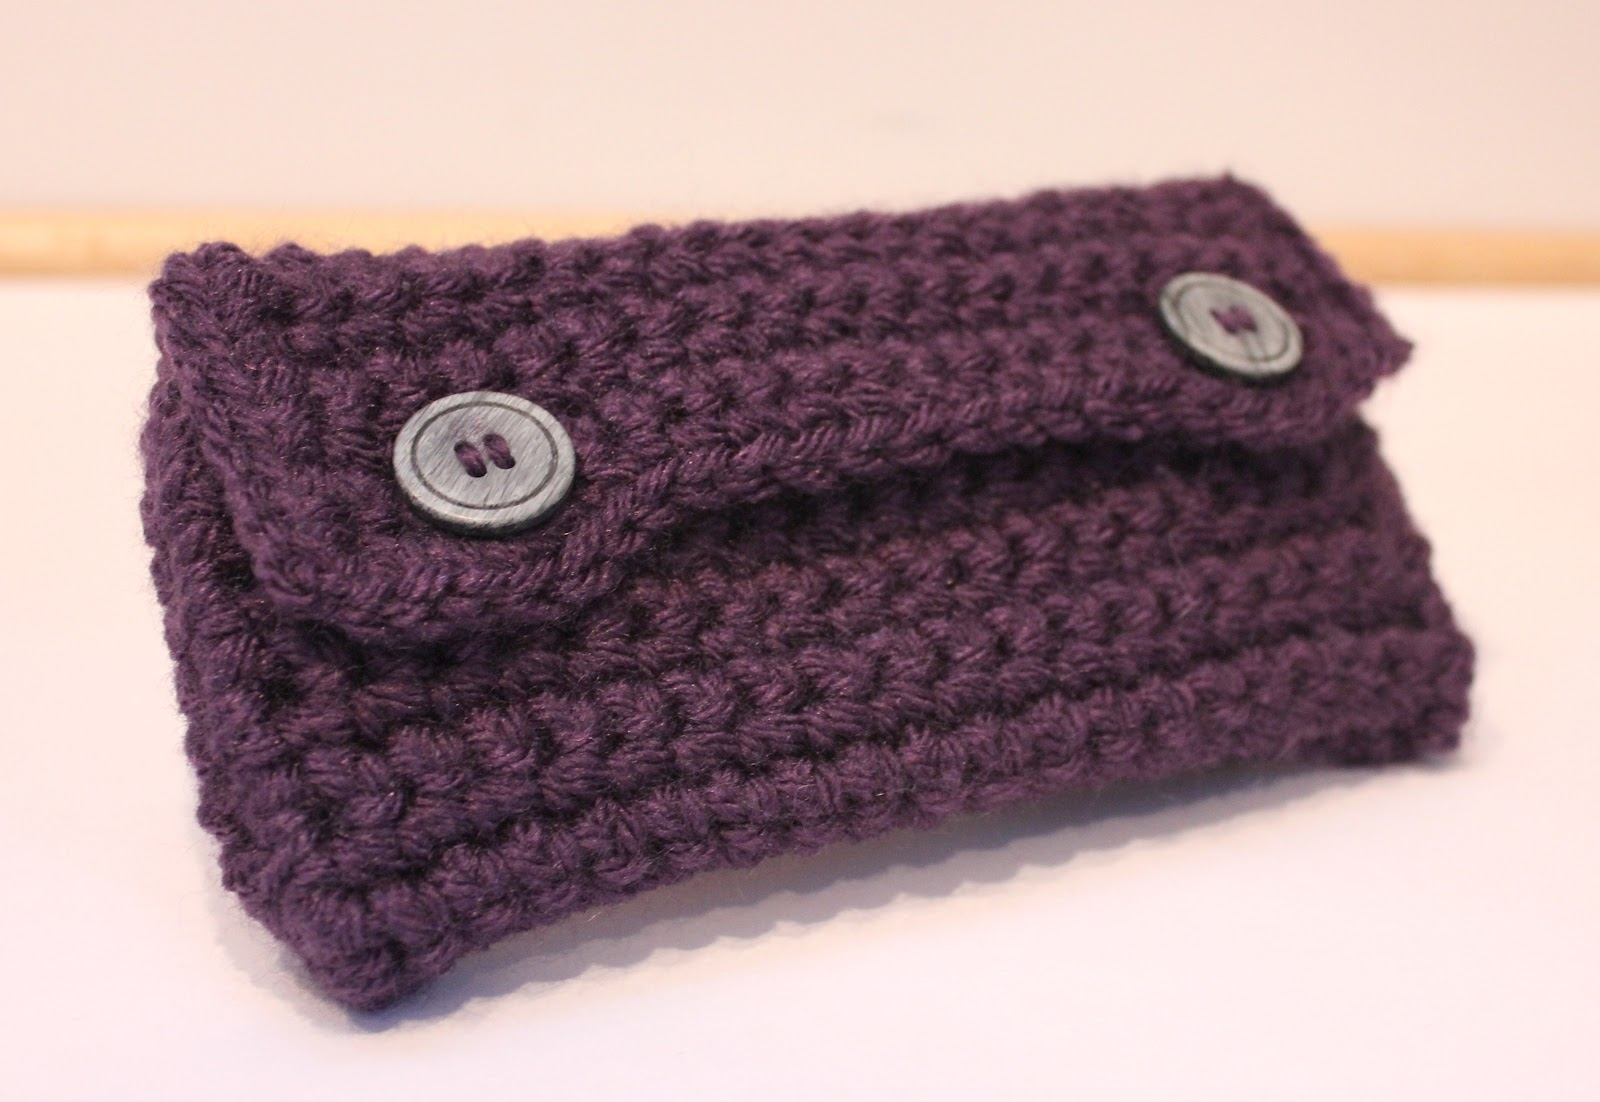 Crochet Clutch Bag Pattern : Crochet Clutch